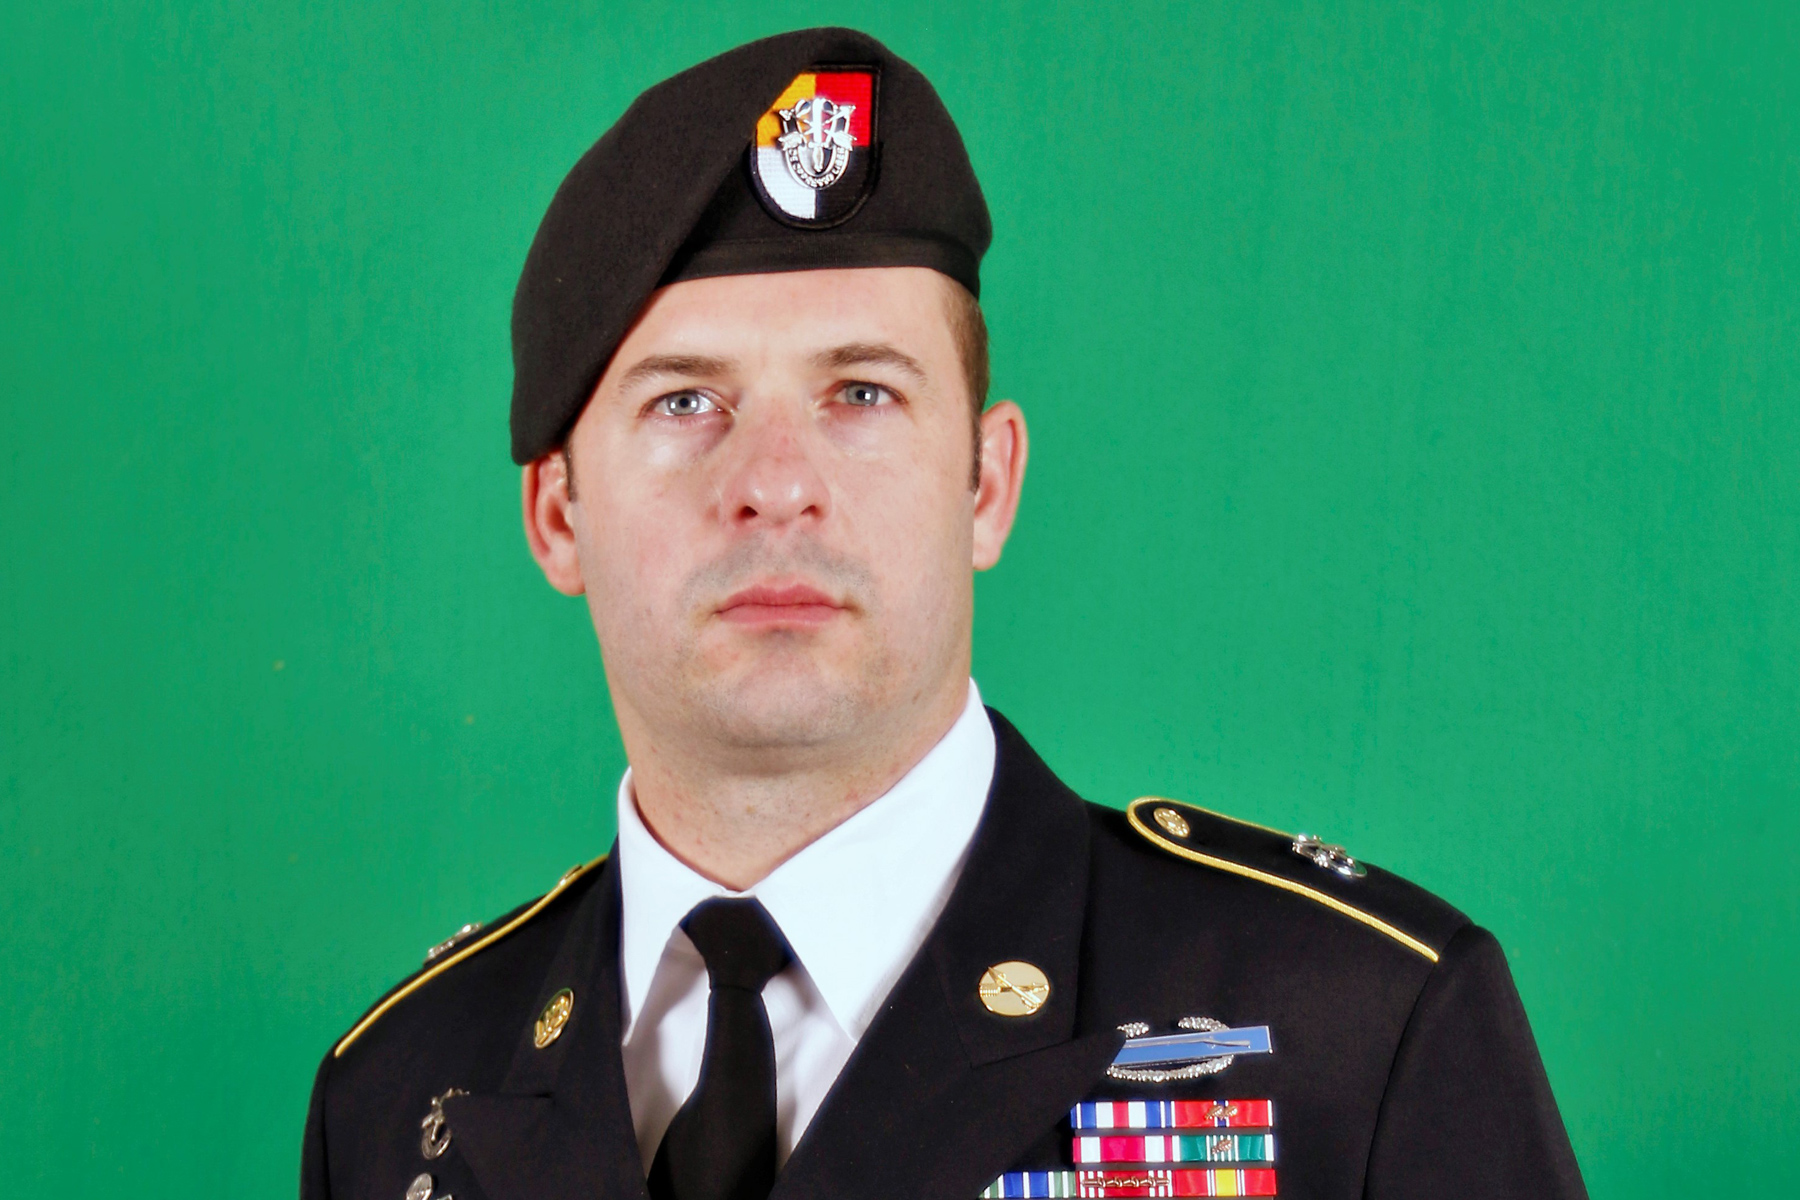 Active-Duty Green Beret to Receive Medal of Honor for Heroic Afghanistan Rescue